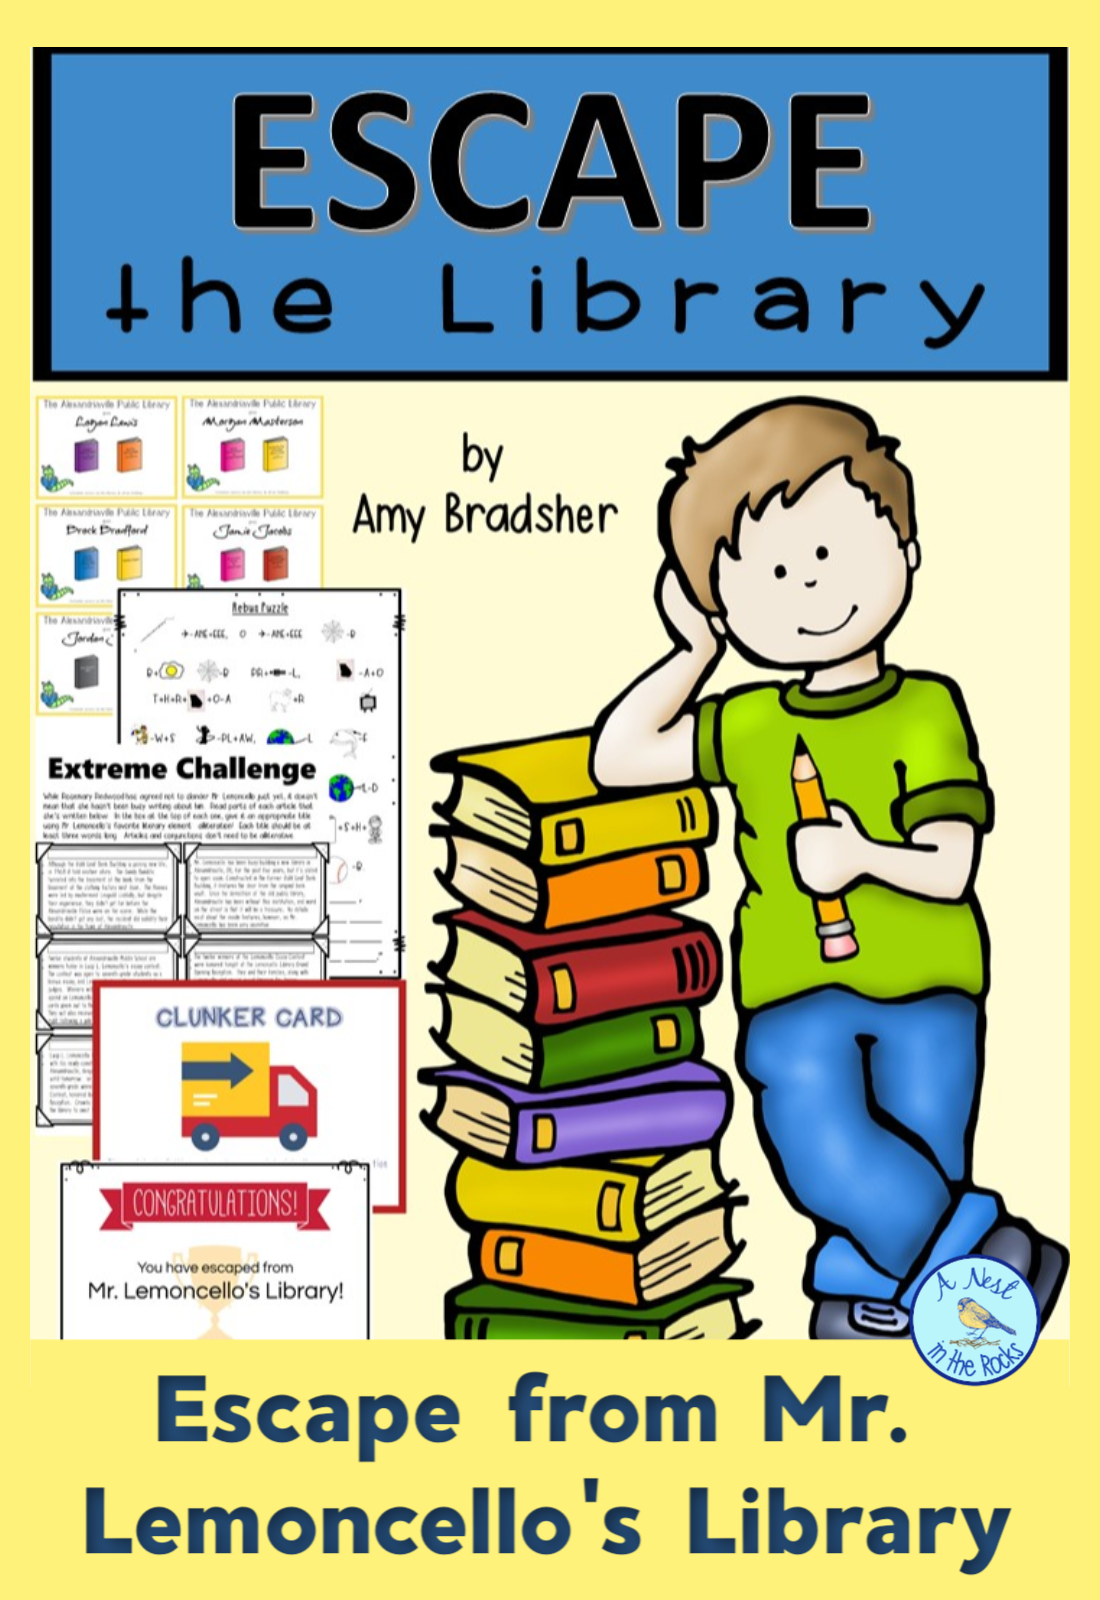 Escape The Library An Escape Room Challenge For Mr